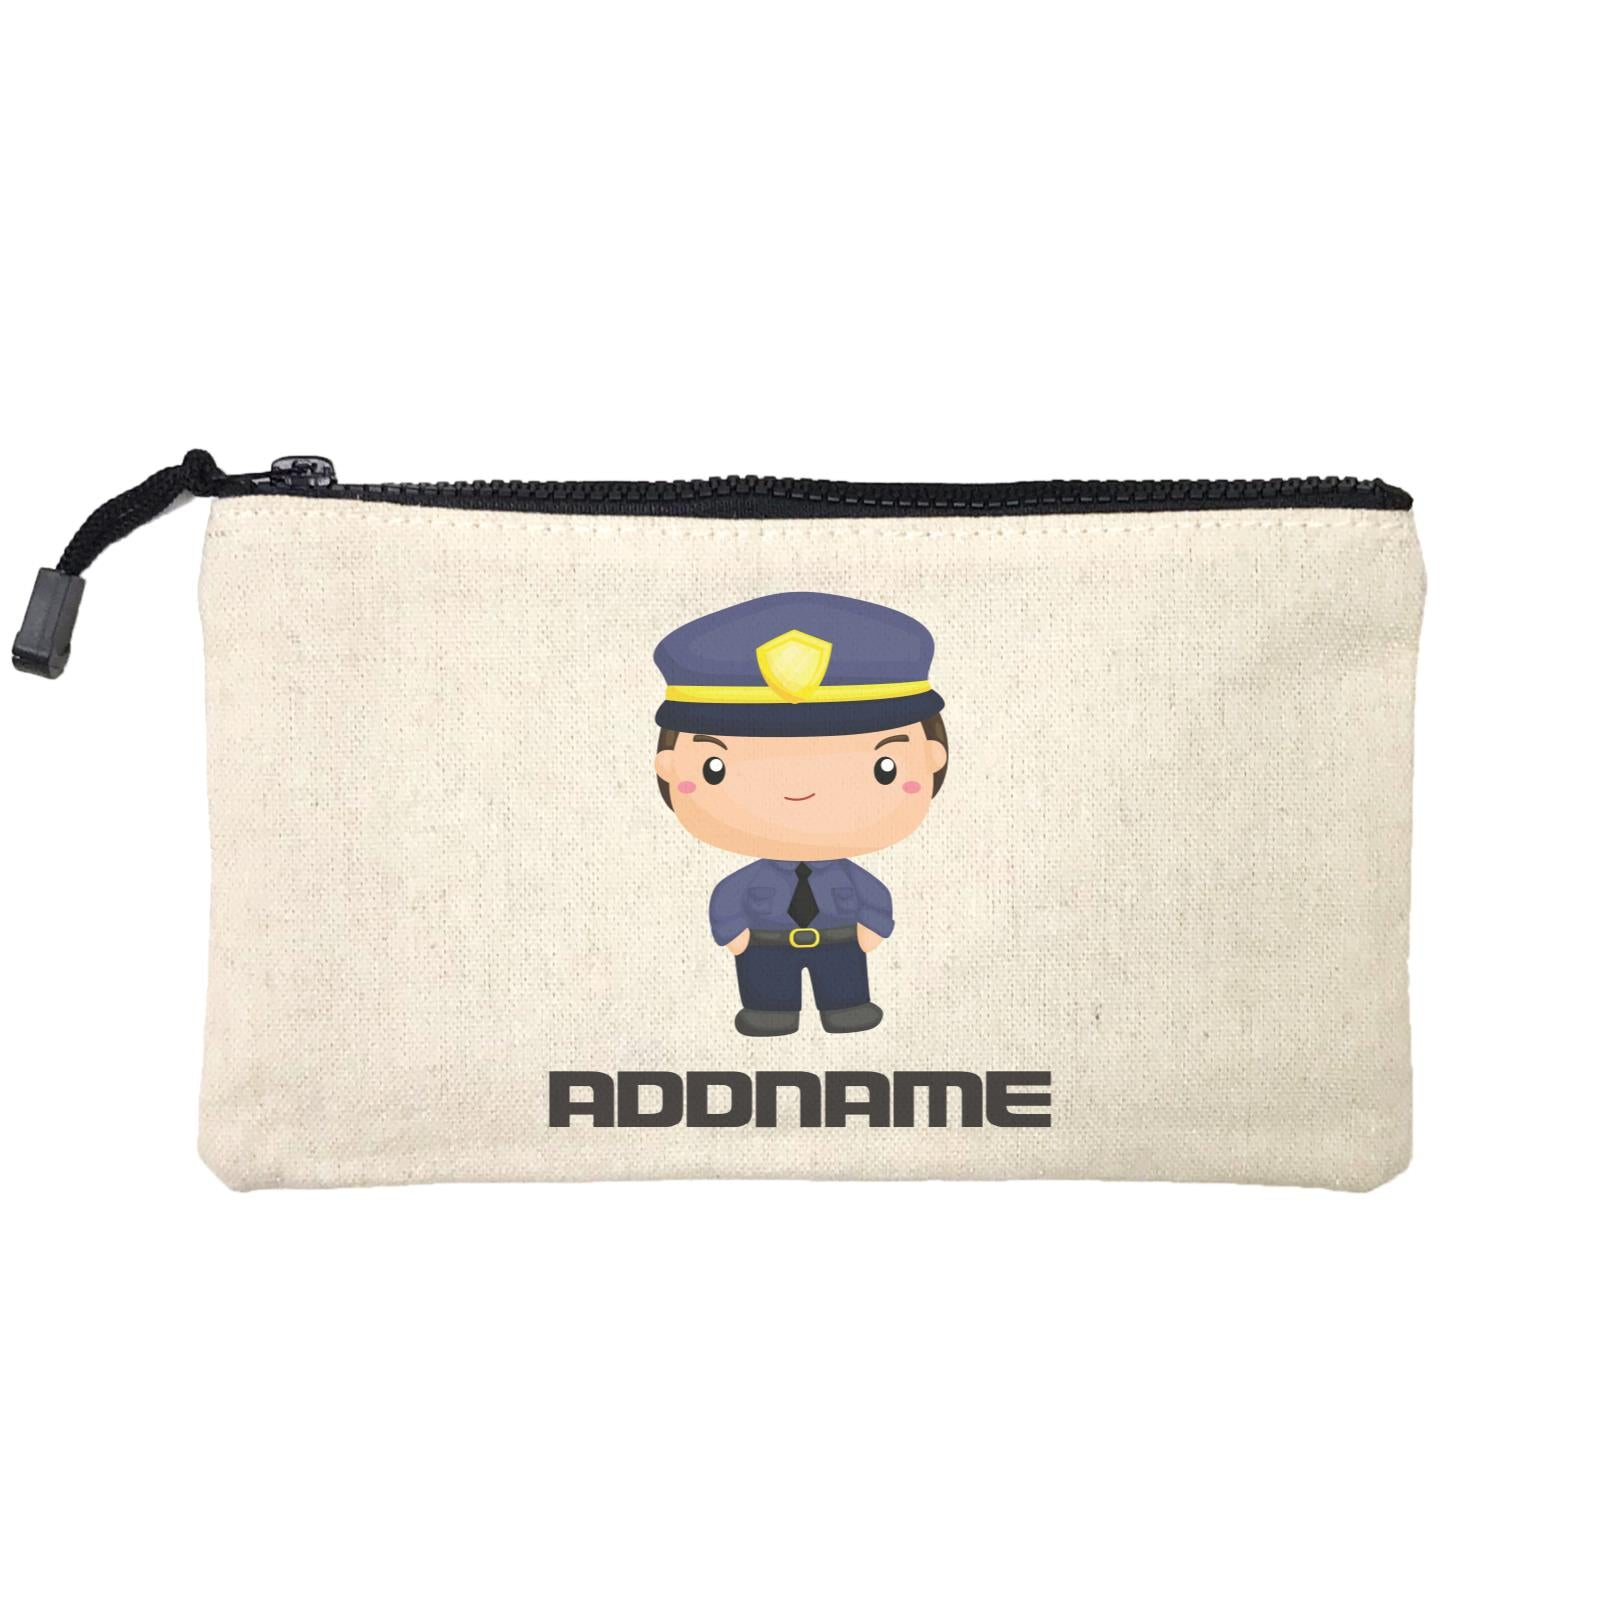 Birthday Police Officer Serious Boy In Suit Addname Mini Accessories Stationery Pouch